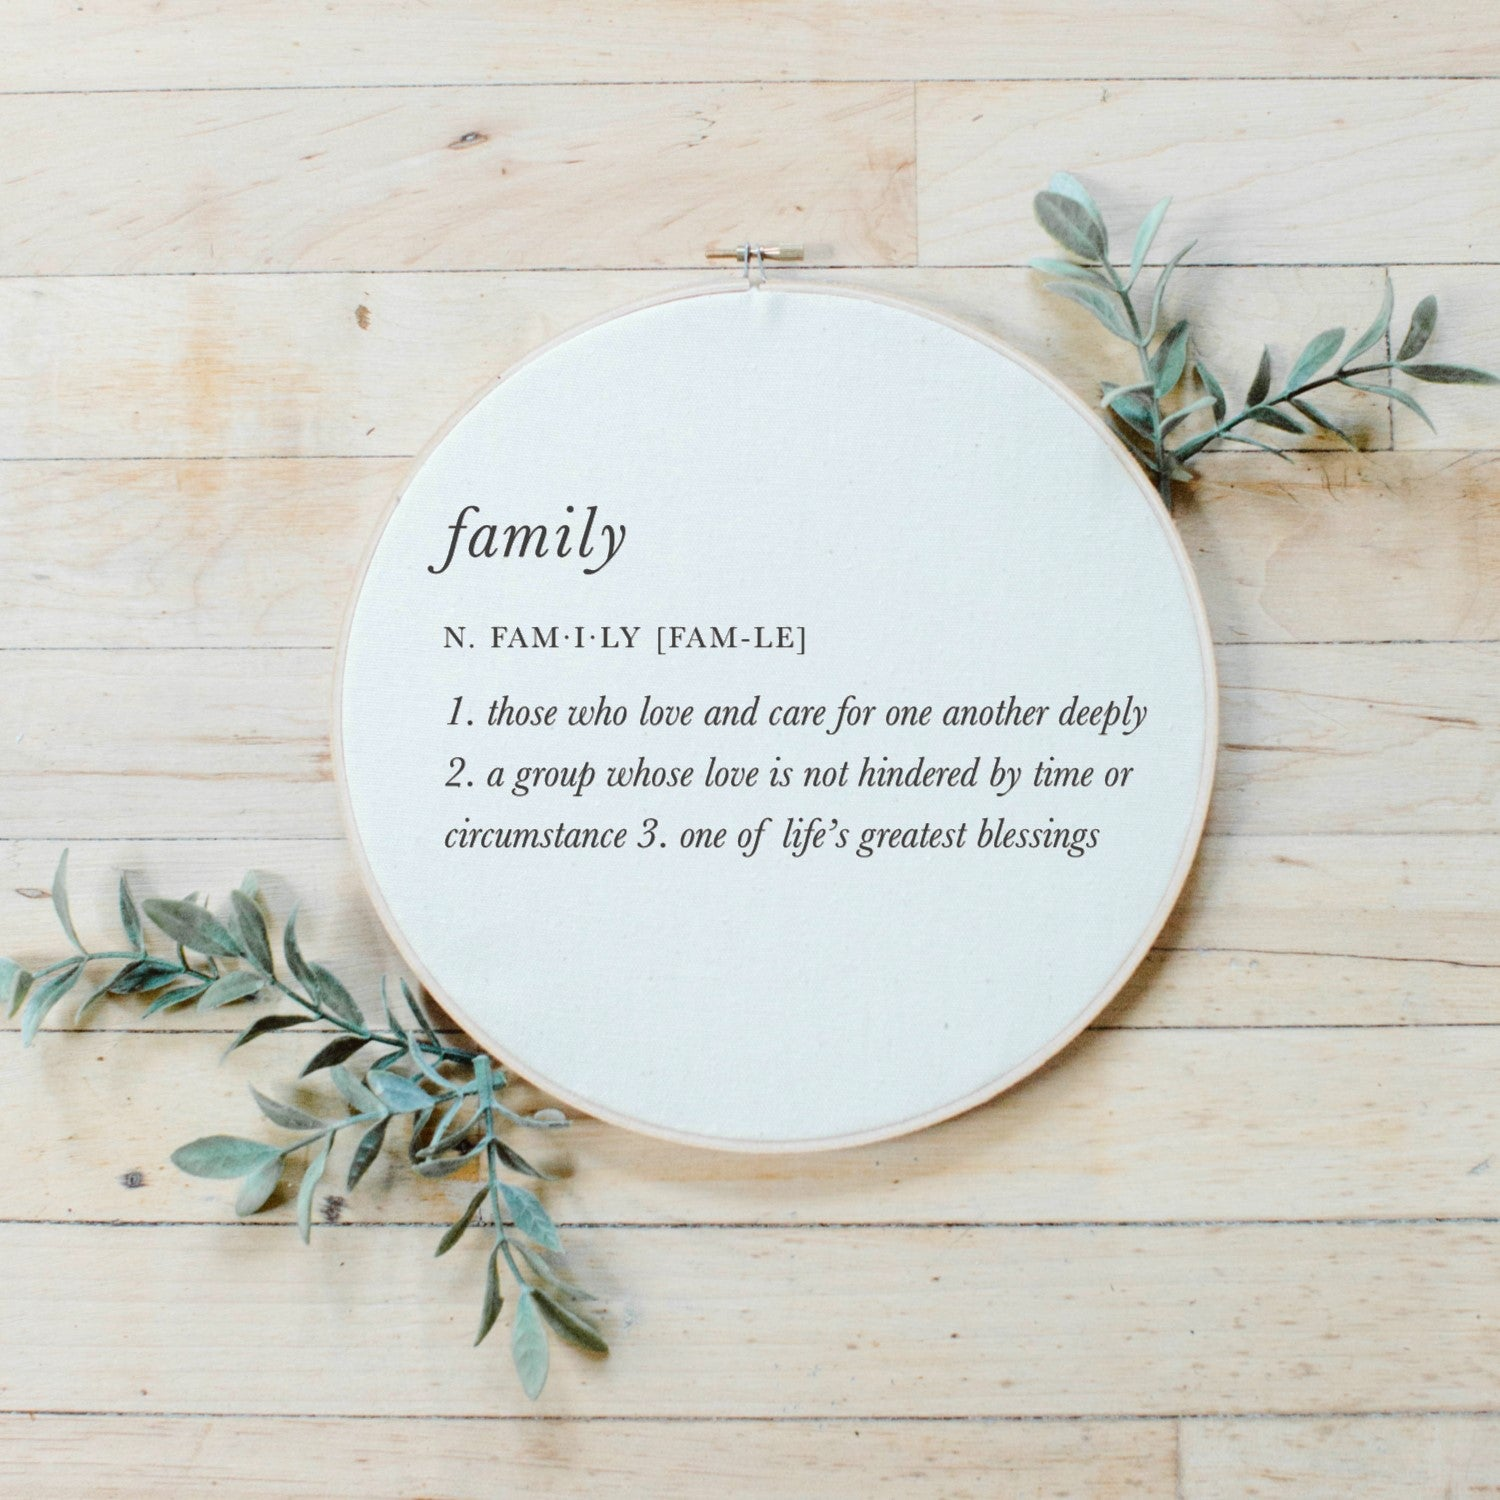 Family Definition Faux Embroidery Hoop